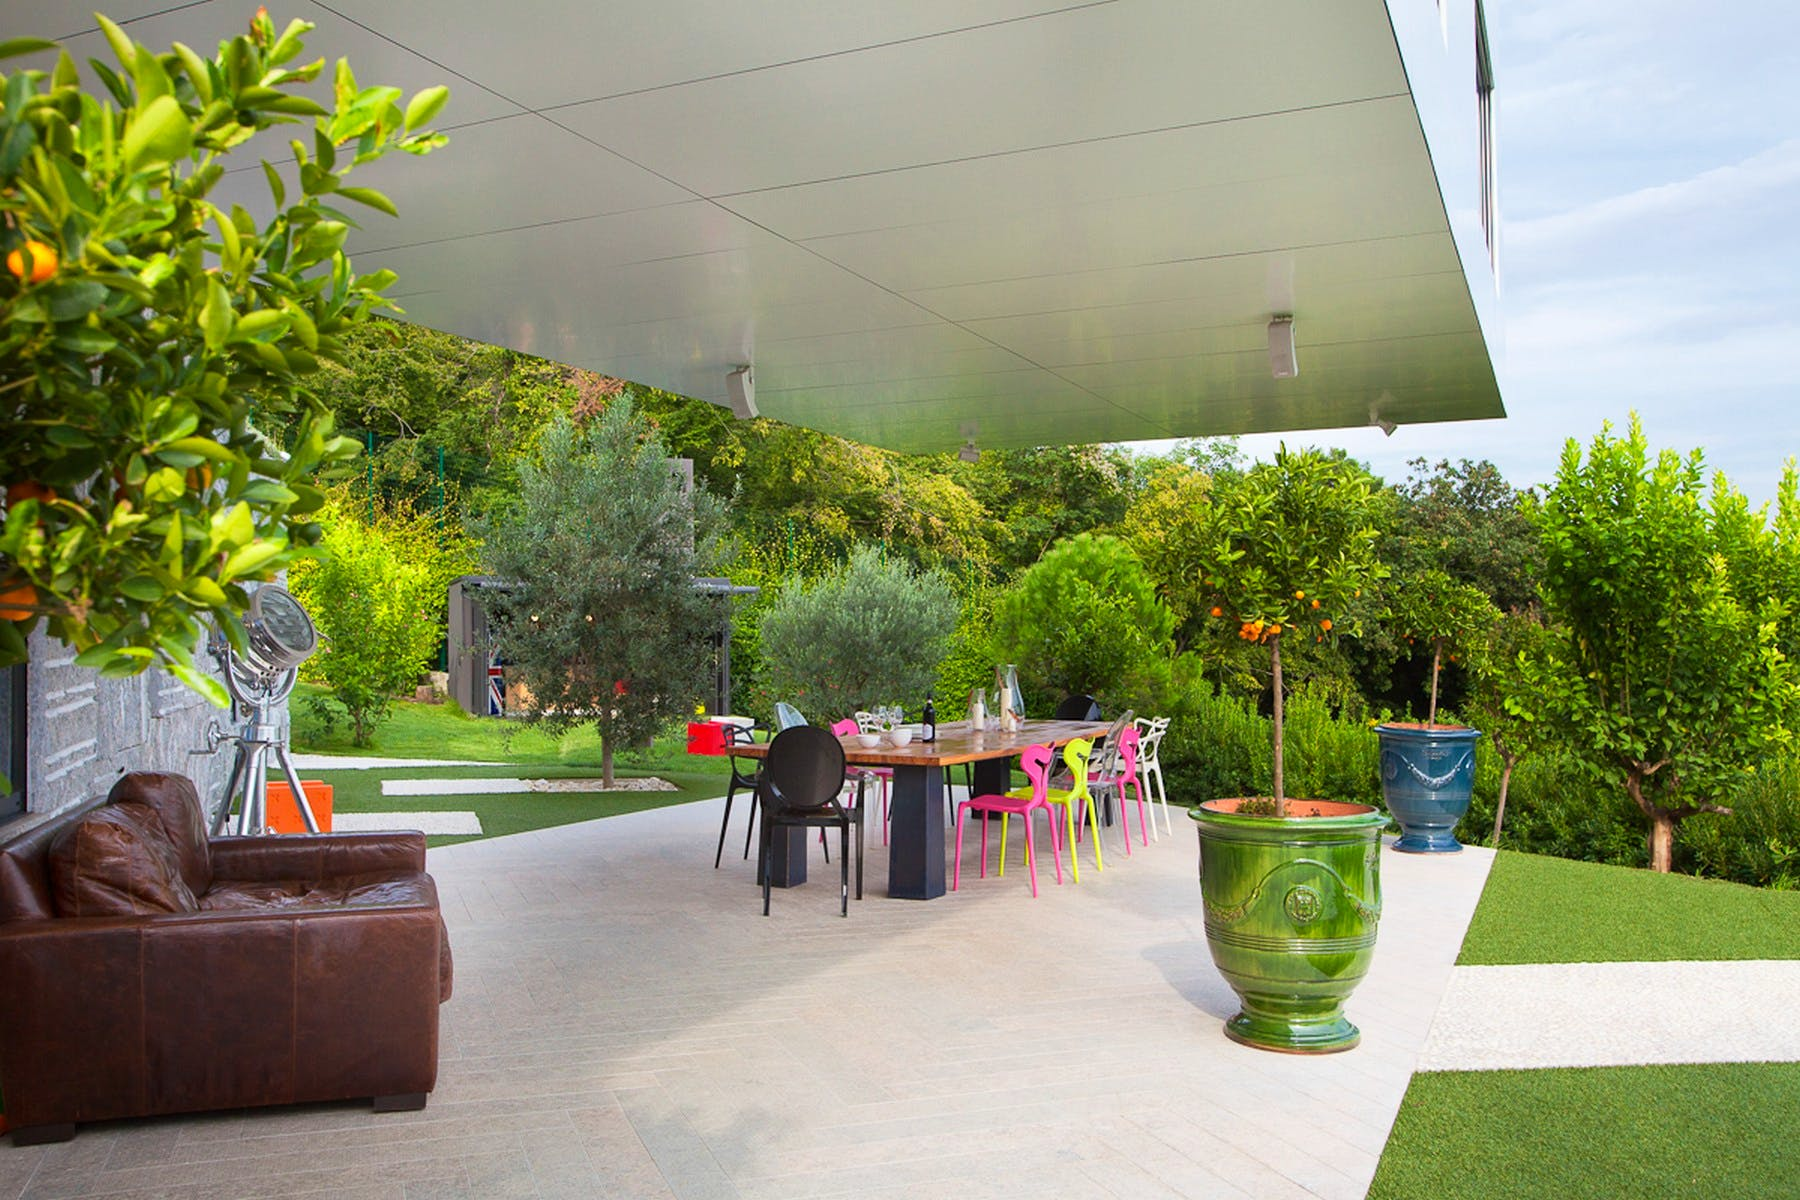 Terrace with an outdoor lounge